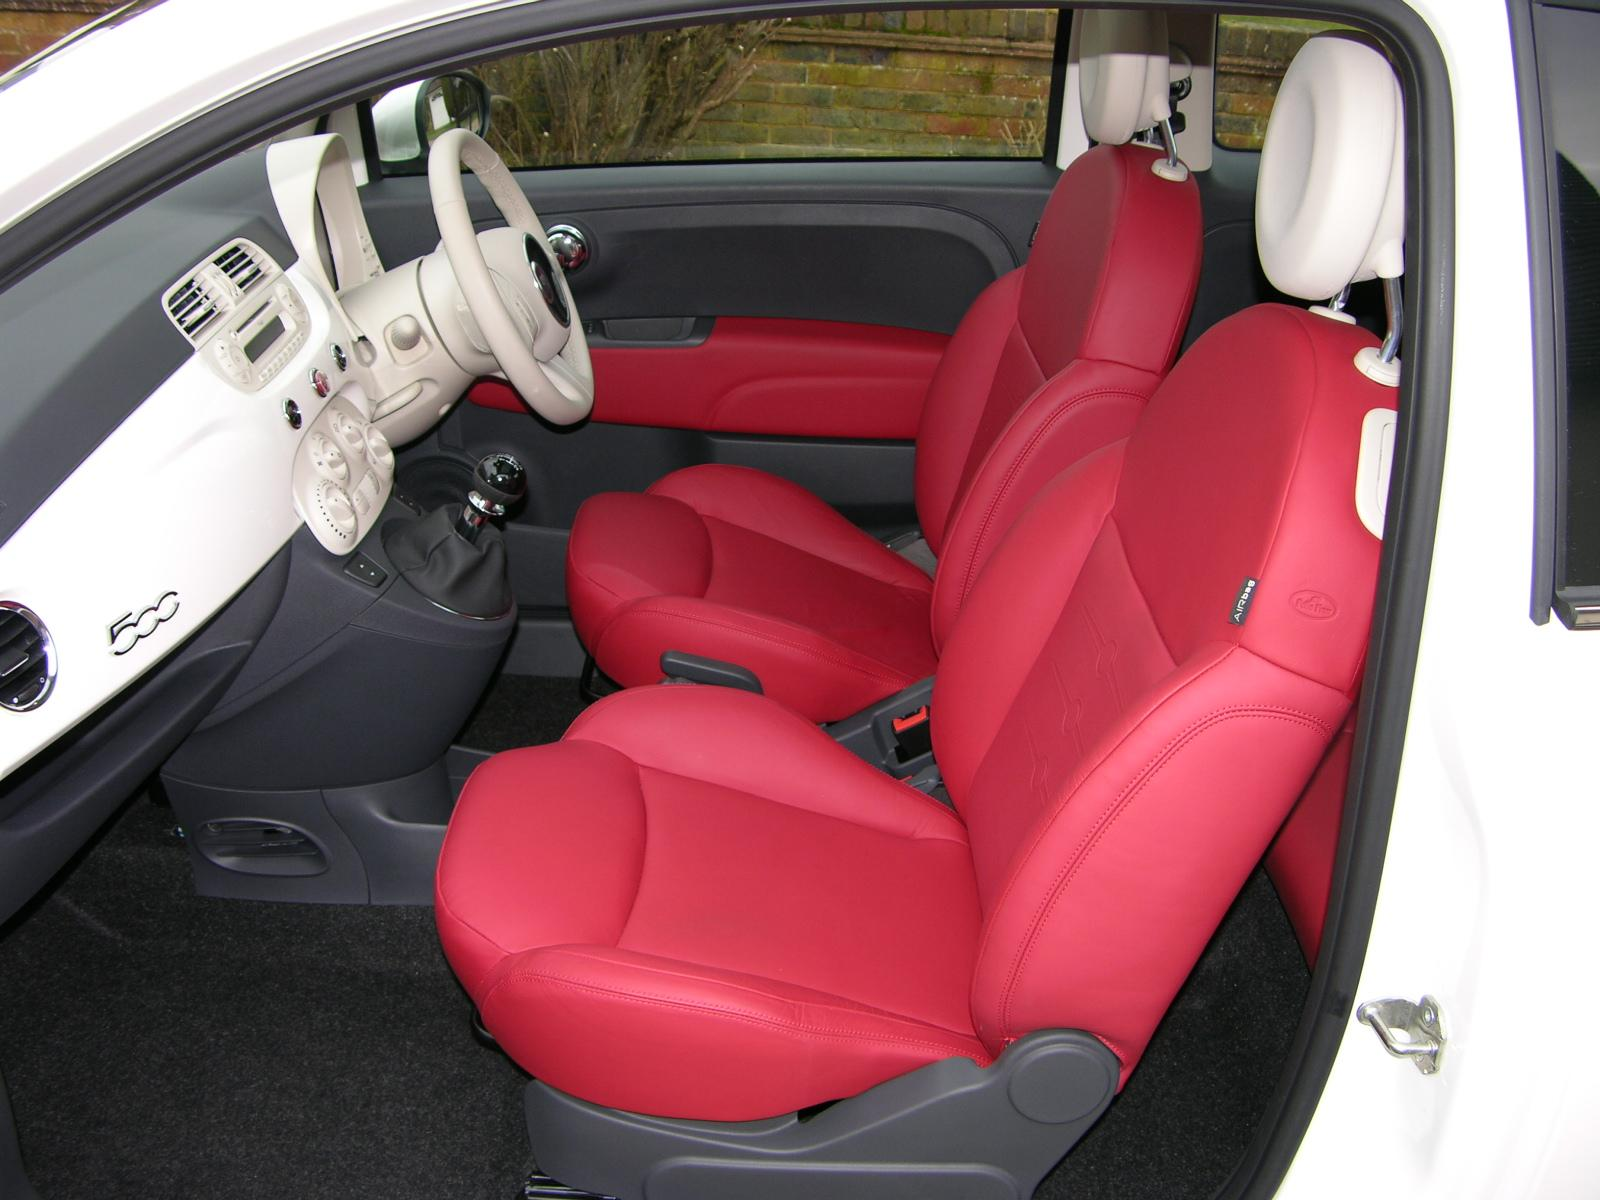 file 2008 fiat 500 1 4 lounge flickr the car spy 5 jpg. Black Bedroom Furniture Sets. Home Design Ideas